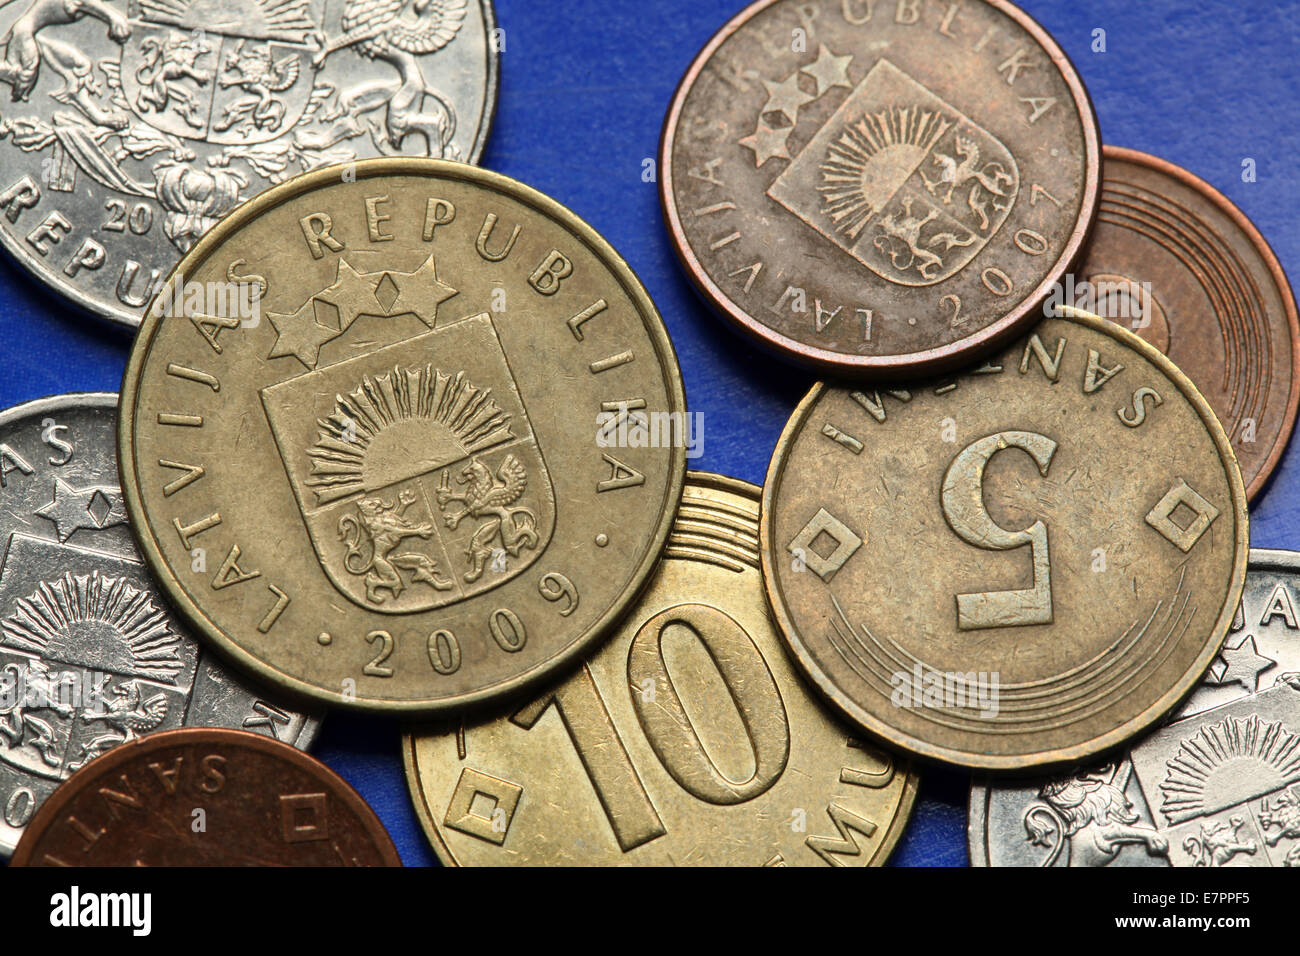 Coins of Latvia. Old Latvian lats and santimi coins. - Stock Image